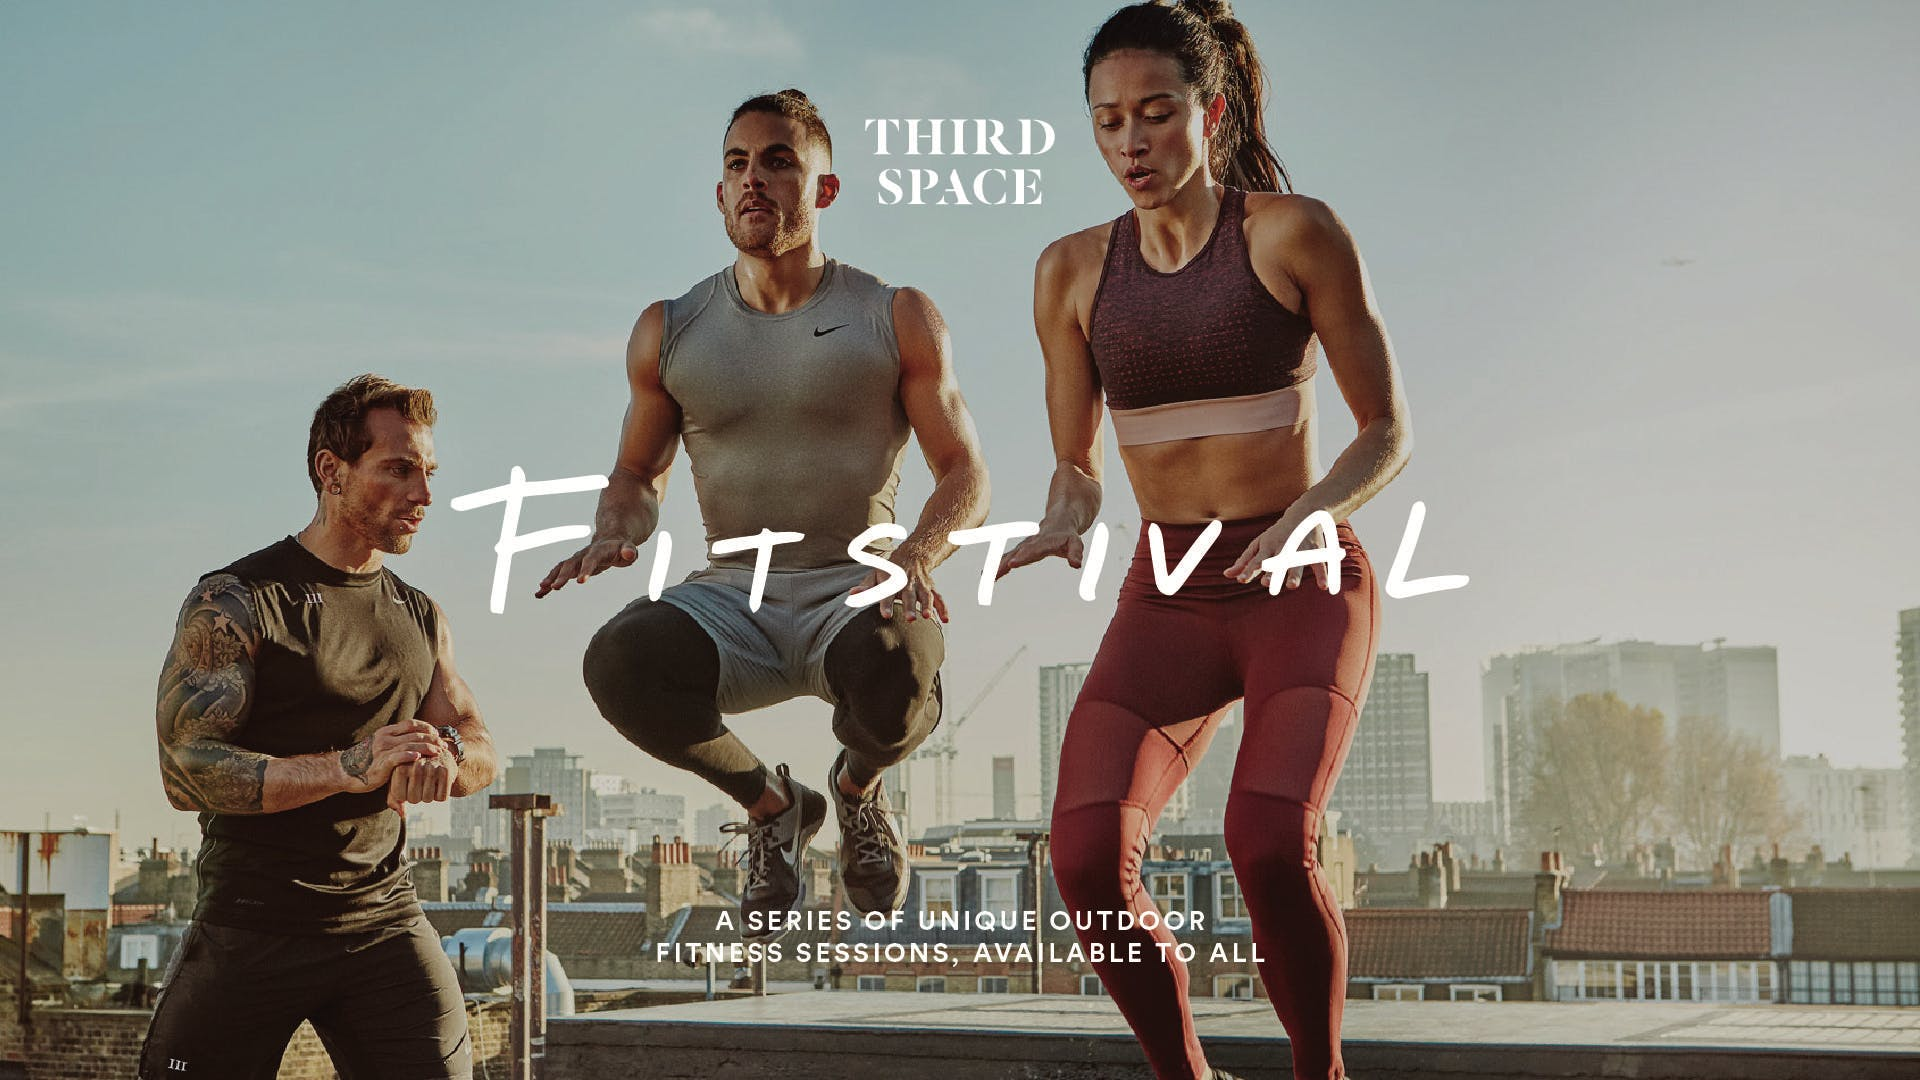 Third Space Fitstival - Pulse